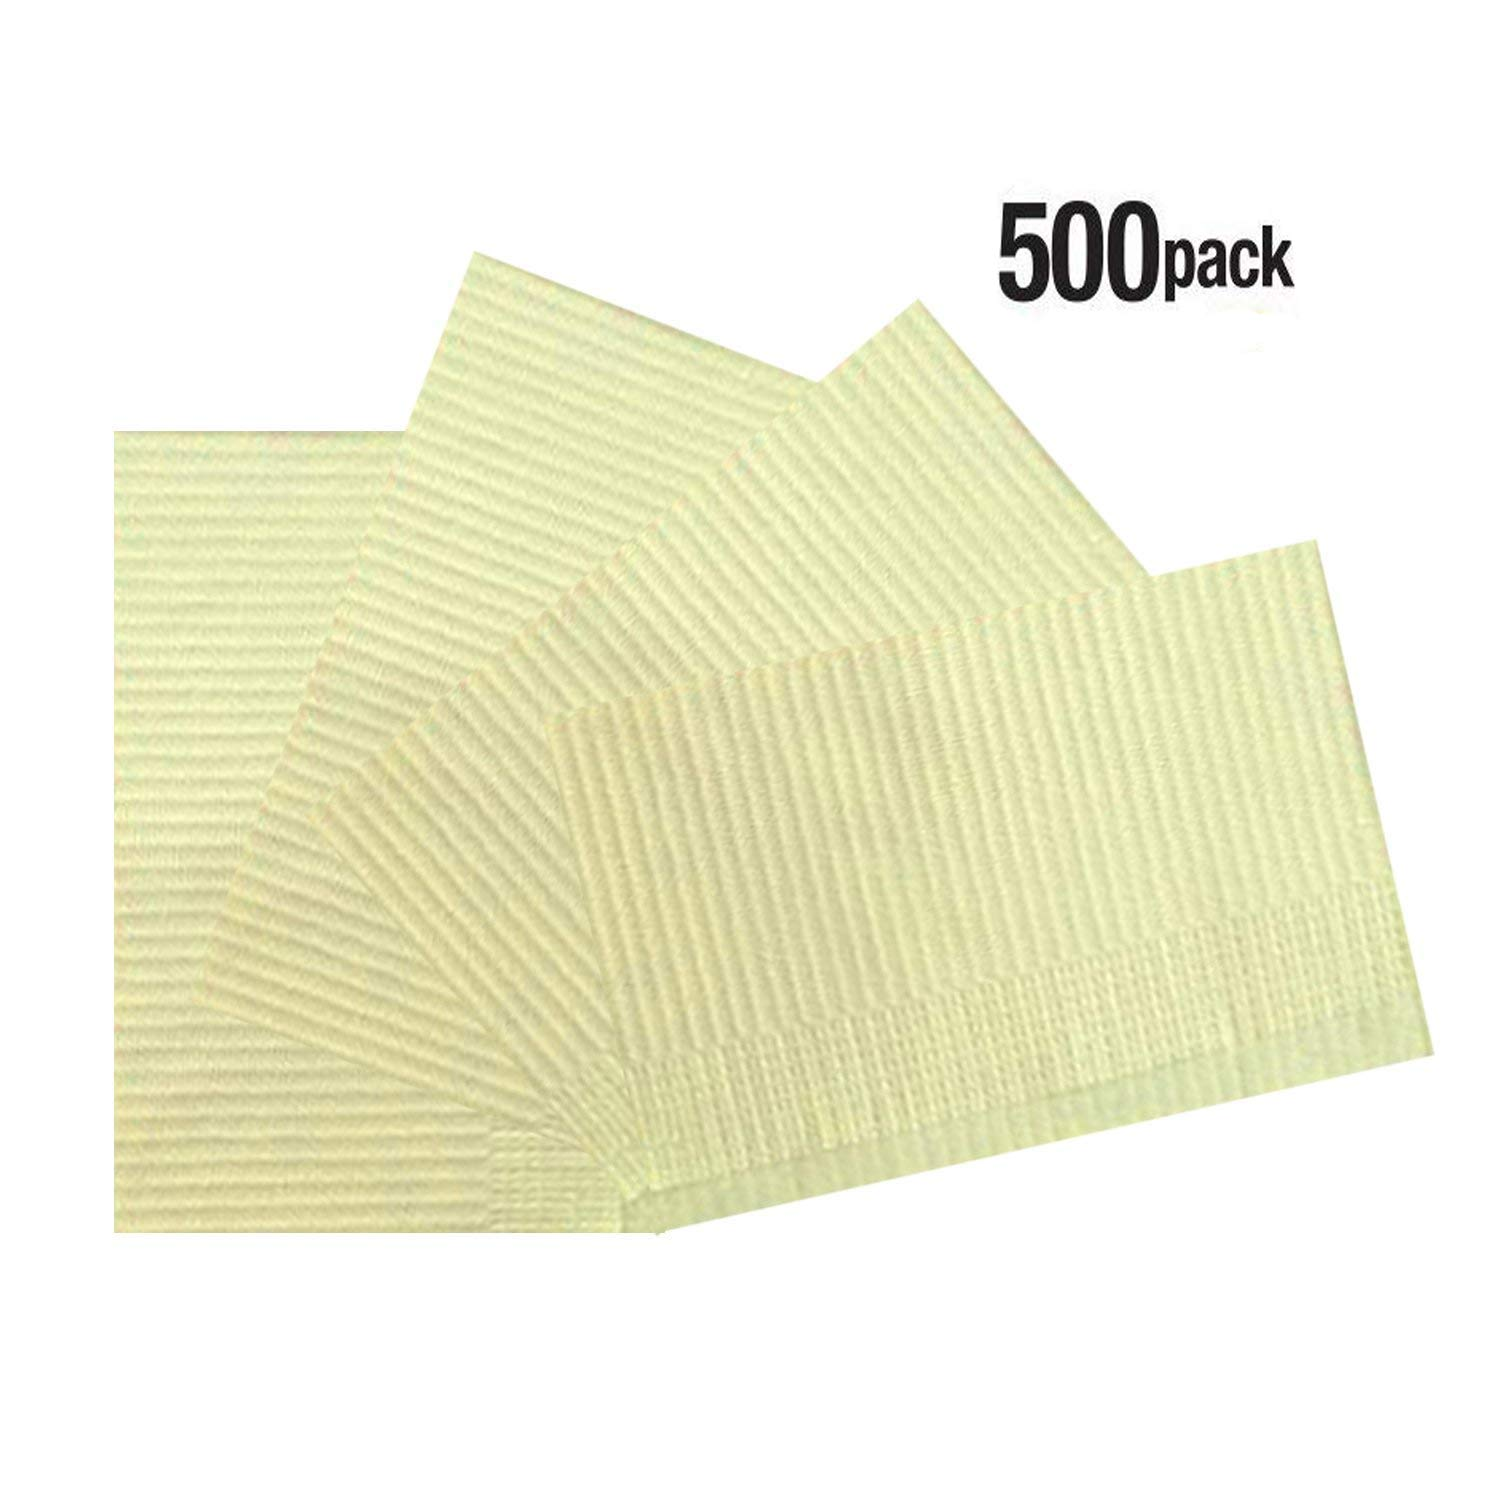 Vivid OnceBib Disposable Patient Bib, 2 Ply paper and 1 Poly Backing, 13''x18'', Set of 500 (Yellow)